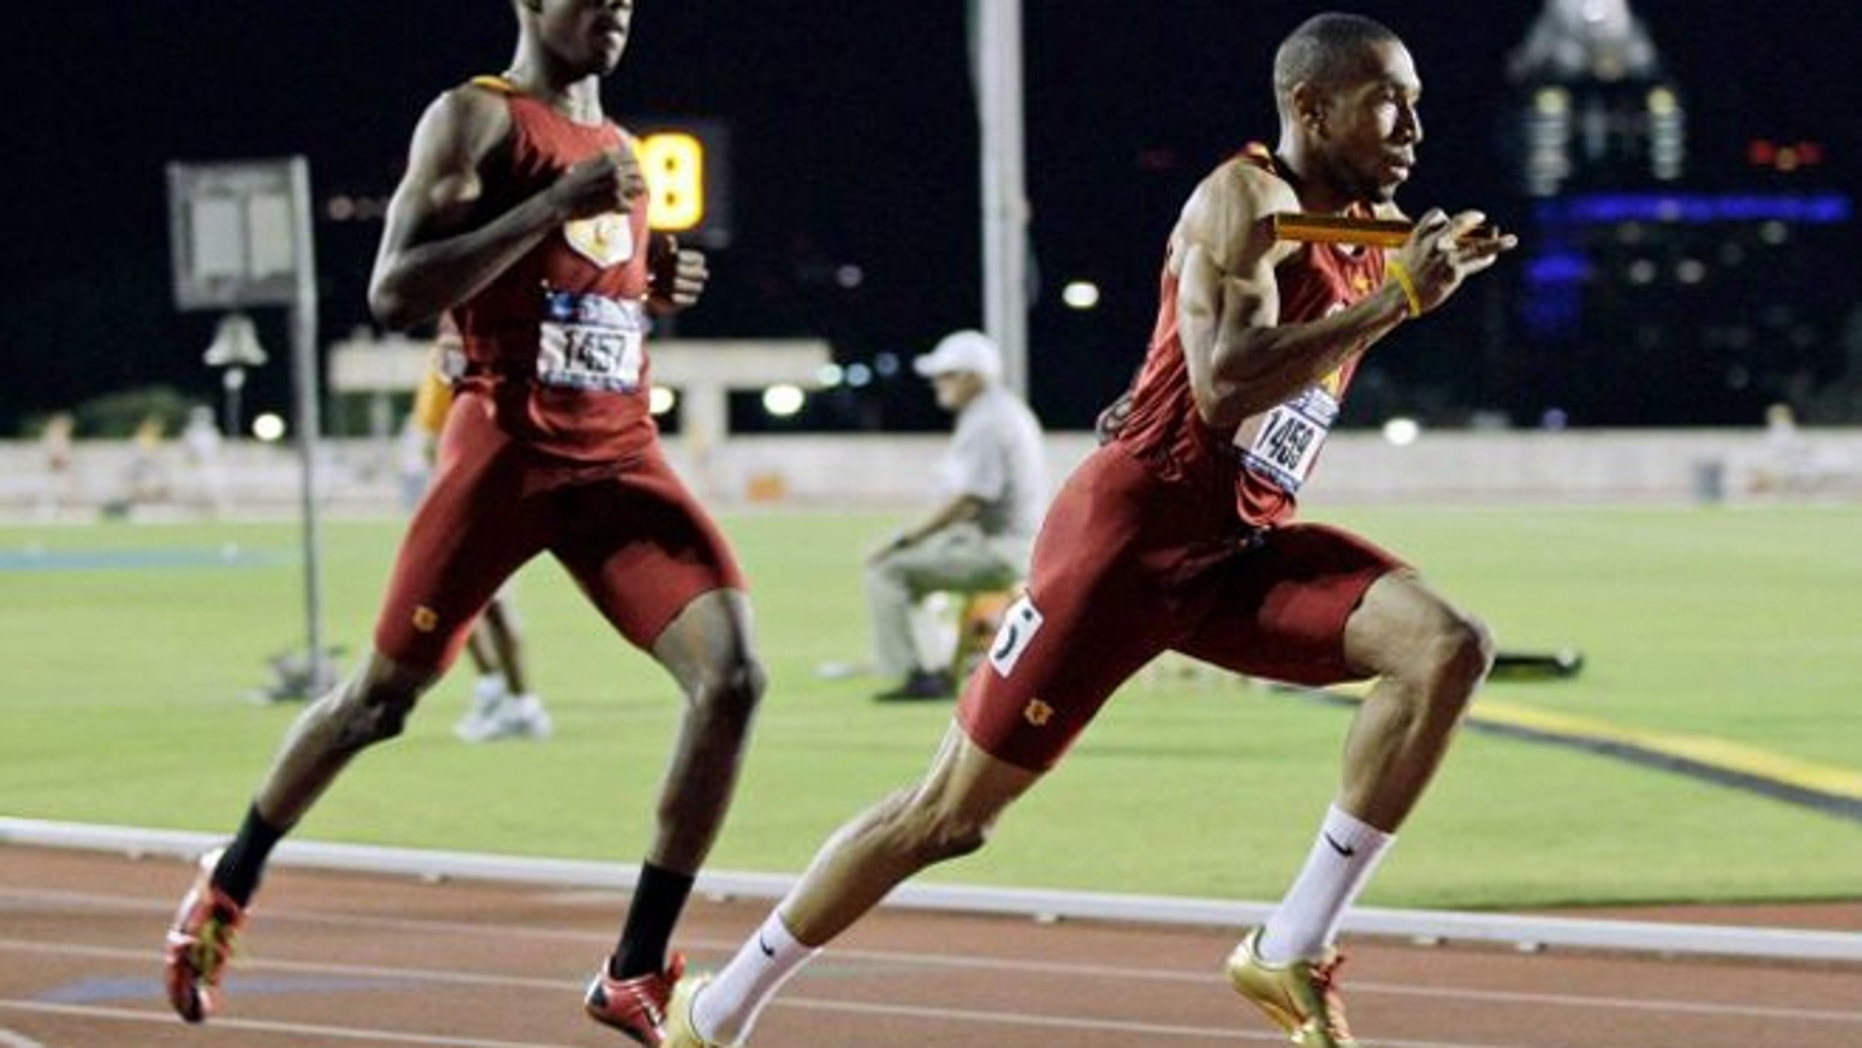 May 26, 2012: In this photo, Southern California sprinter Bryshon Nellum, right, runs past teammate Josh Mance, left, after the baton handoff during the men's 4X400 meter relay at the NCAA Track and Field Championships West Preliminary in Austin, Texas.